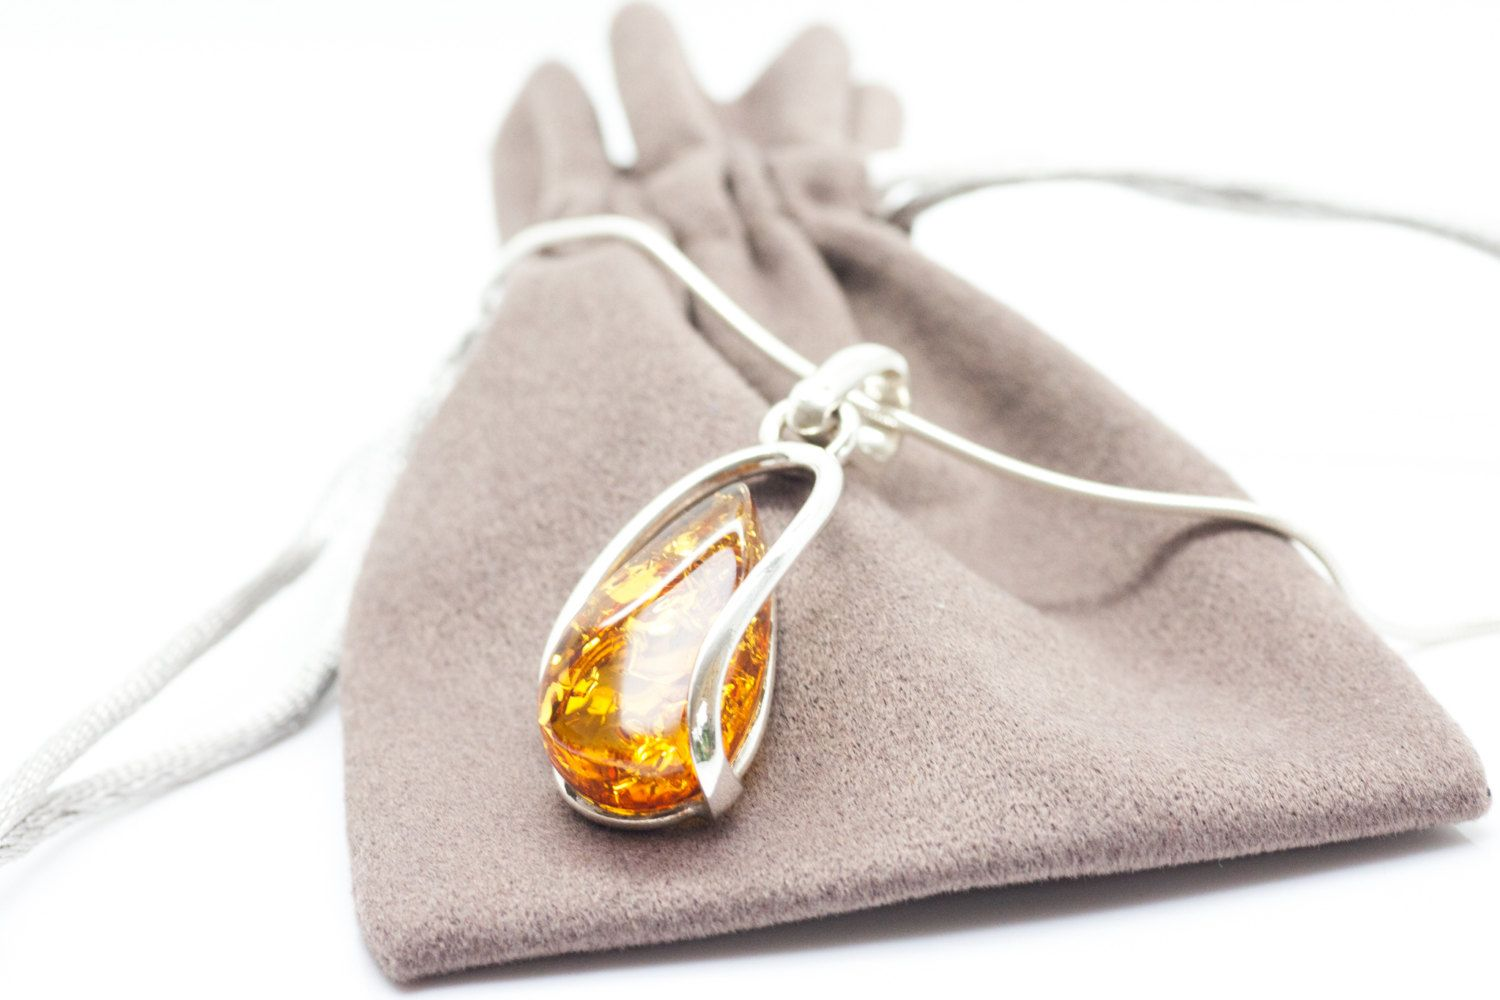 BALTIC AMBER AND STERLING SILVER 925 DESIGNER MULTI-COLOURED PENDANT JEWELLERY JEWELRY NO CHAIN